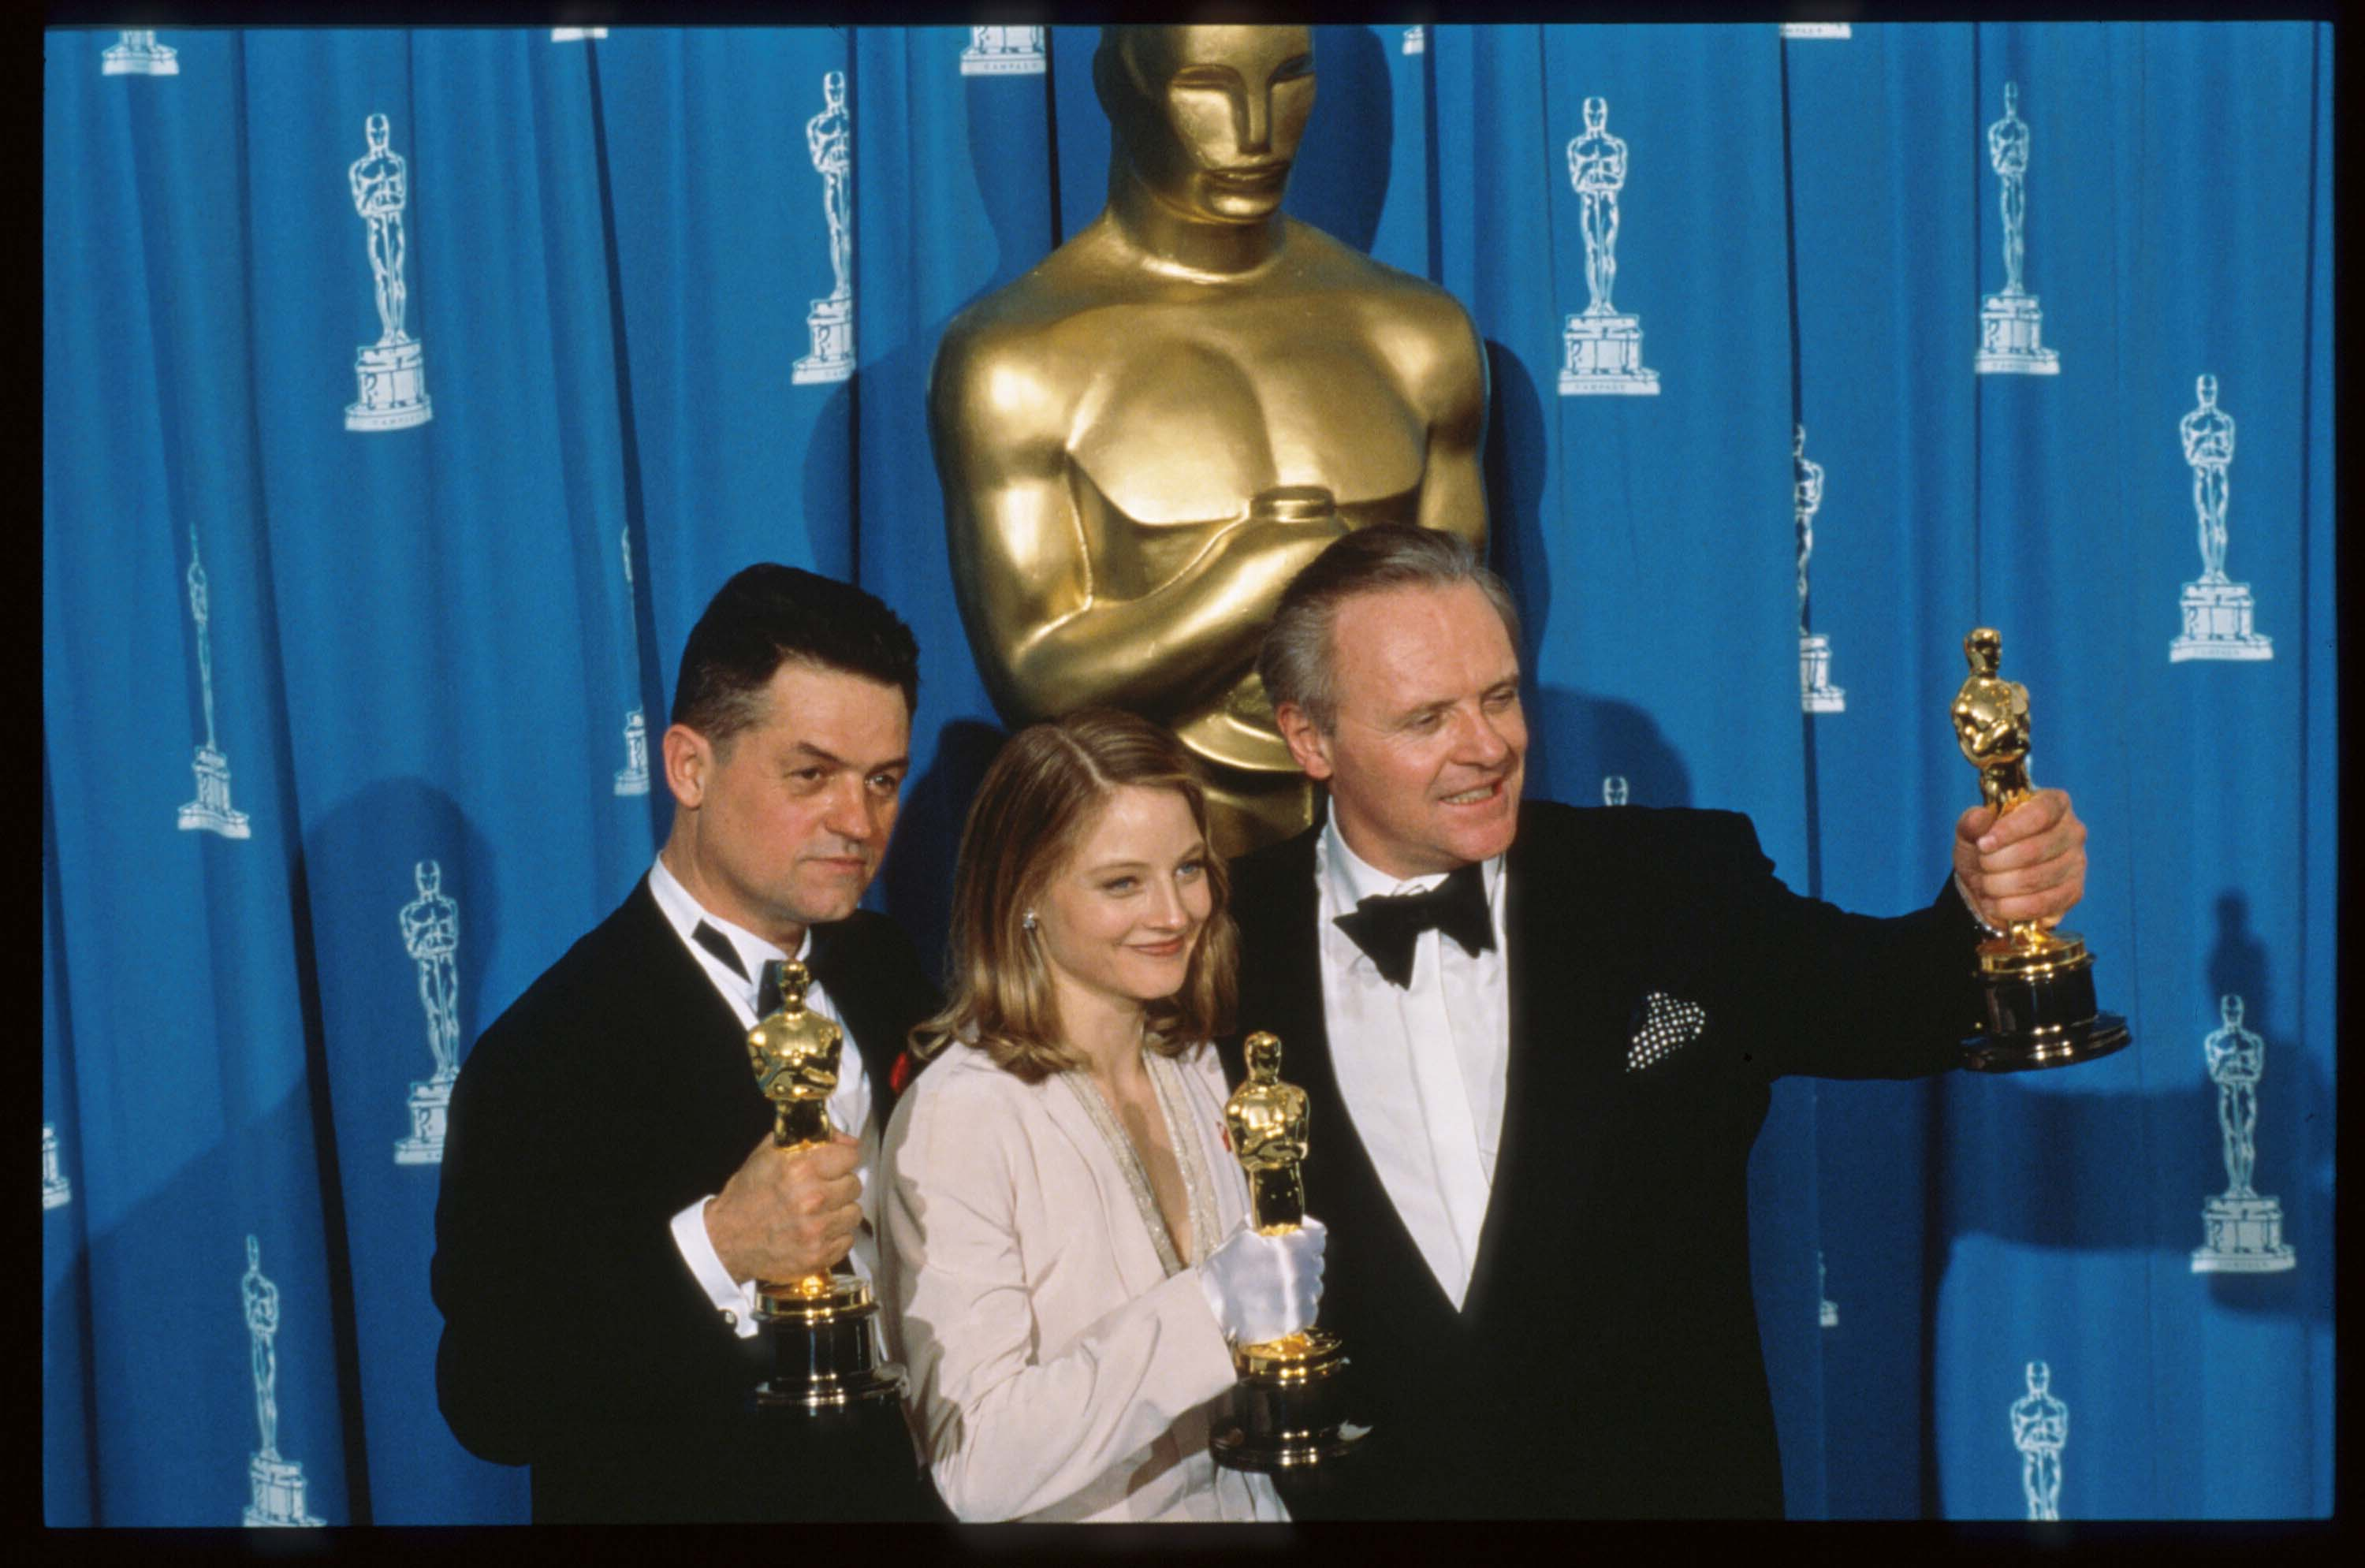 Anthony Hopkins, Jodie Foster and Jonathan Demme with their Oscars for Silence of the Lambs in 1992 (Getty, EH)